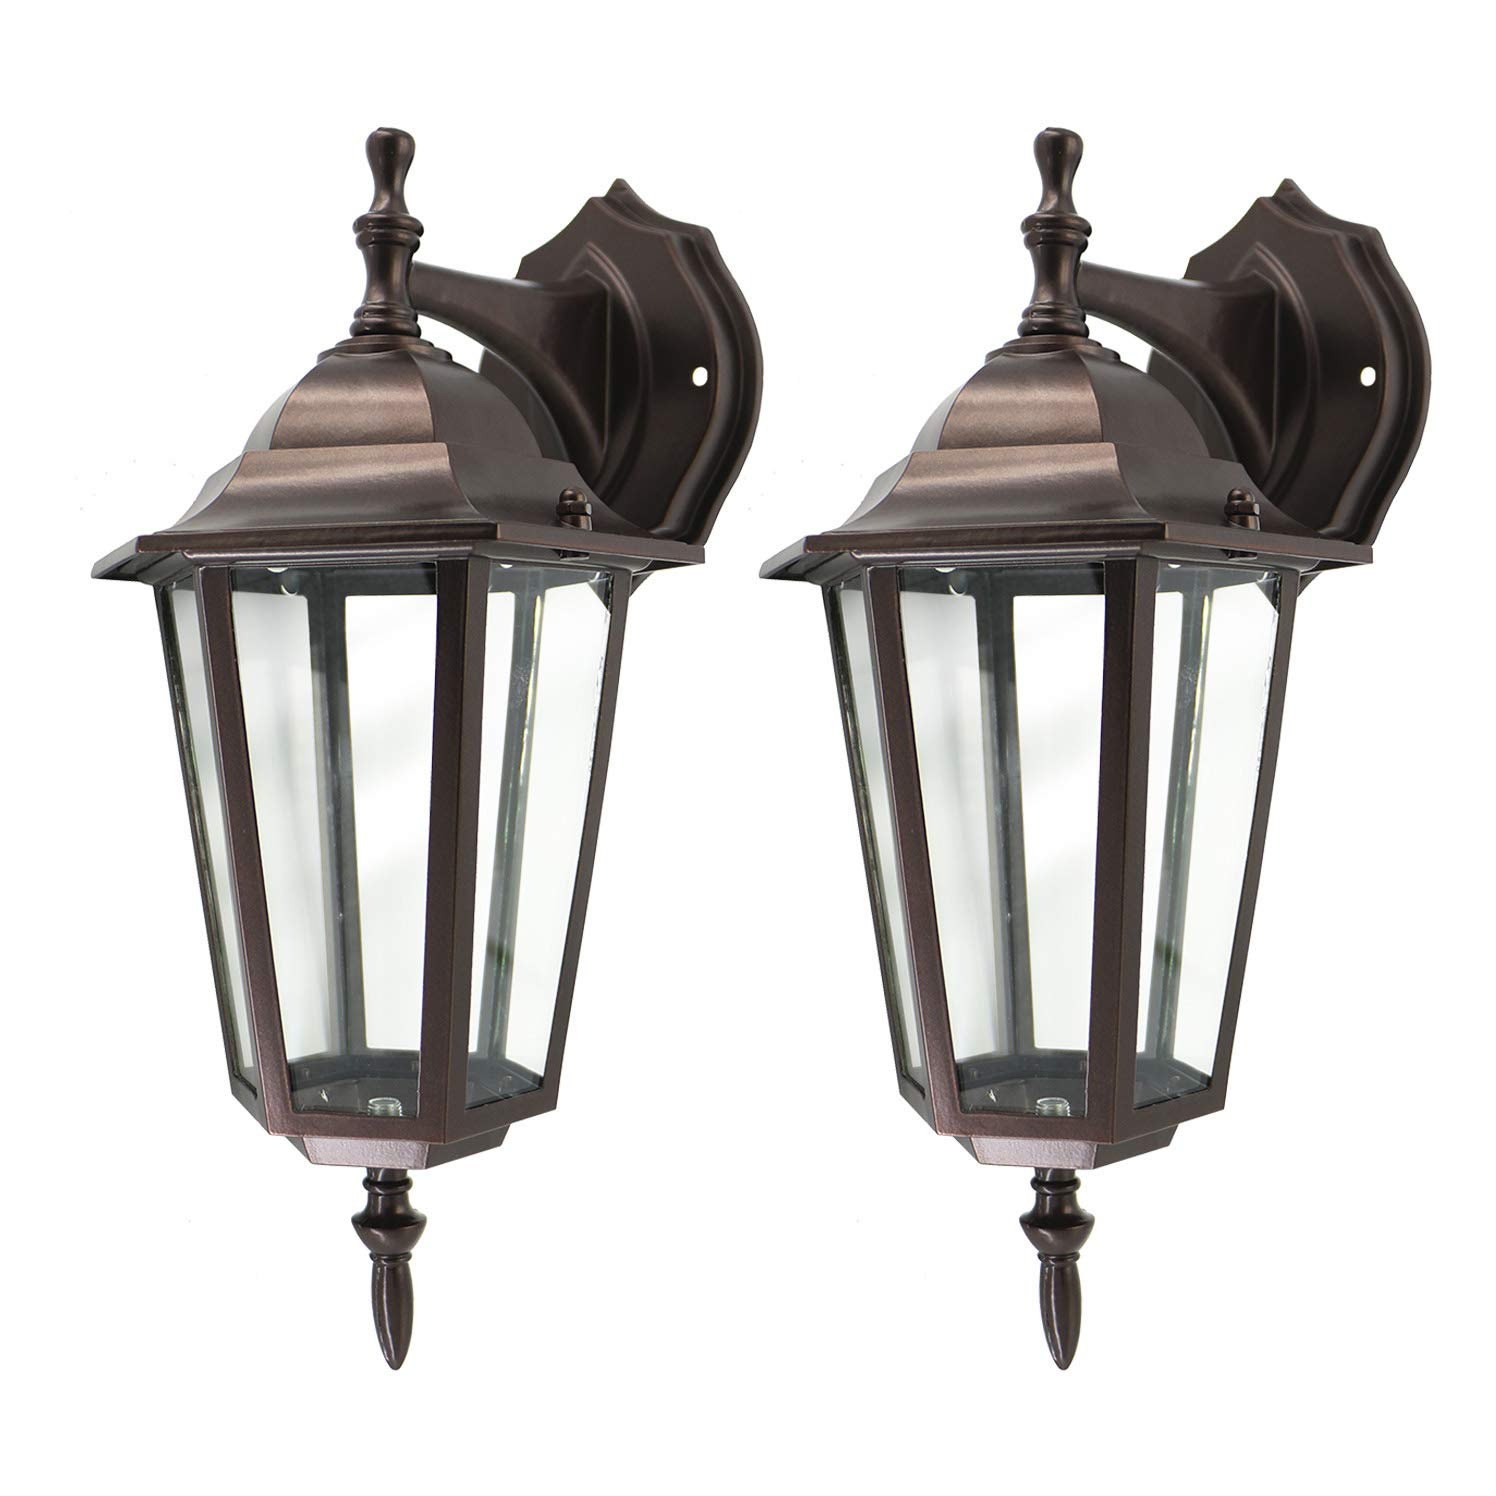 Outdoor wall ceiling lights front porch light fixtures lantern back lighting patio back fixture wall sconce